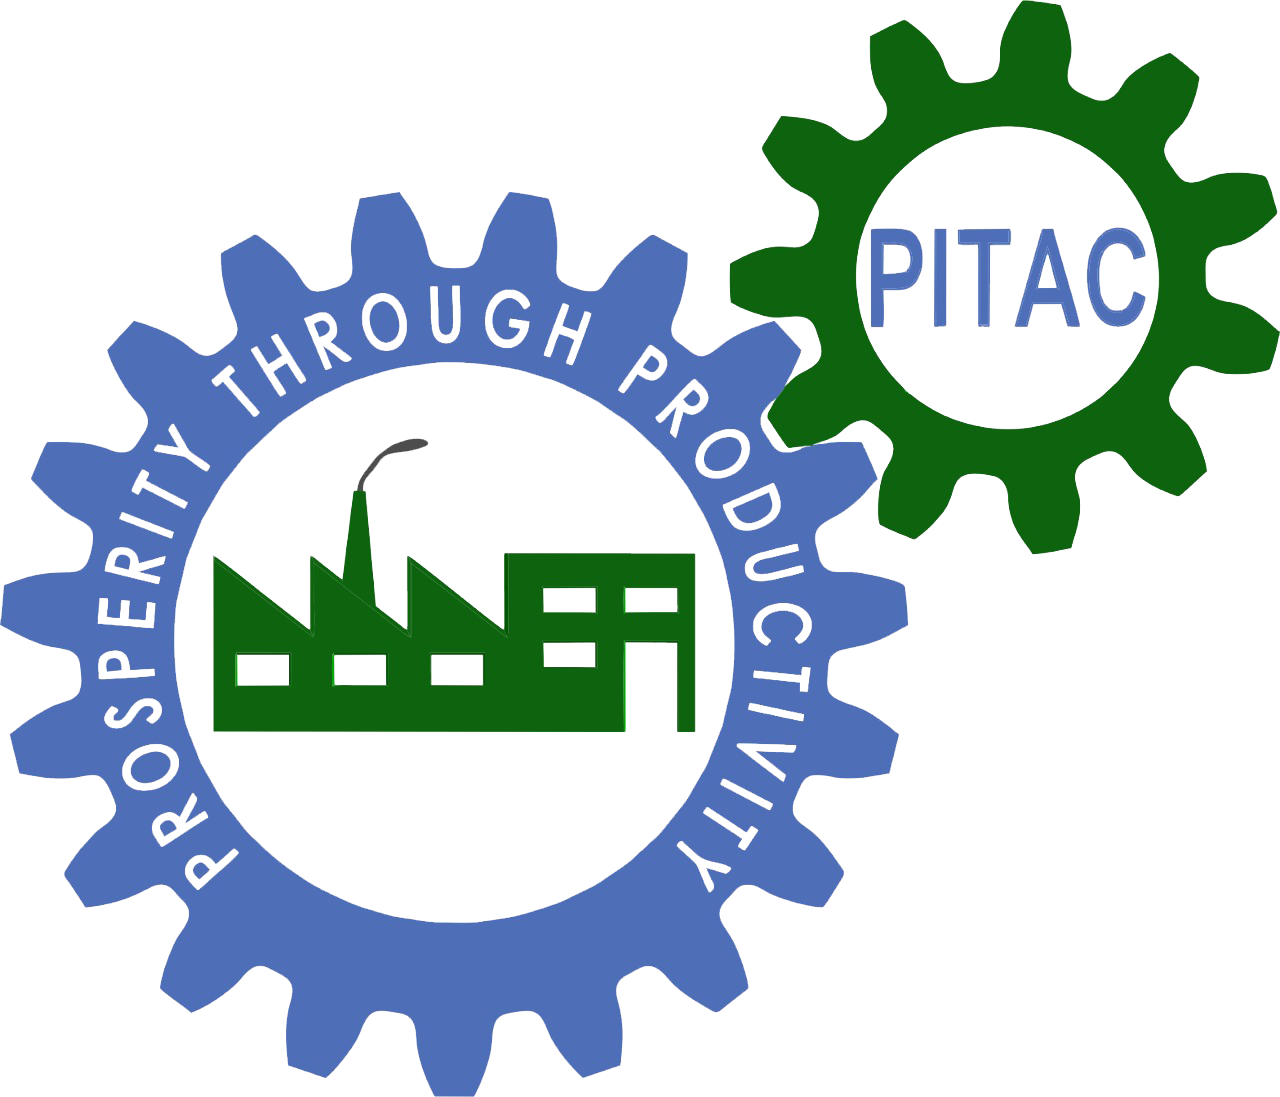 PITAC College of Technology